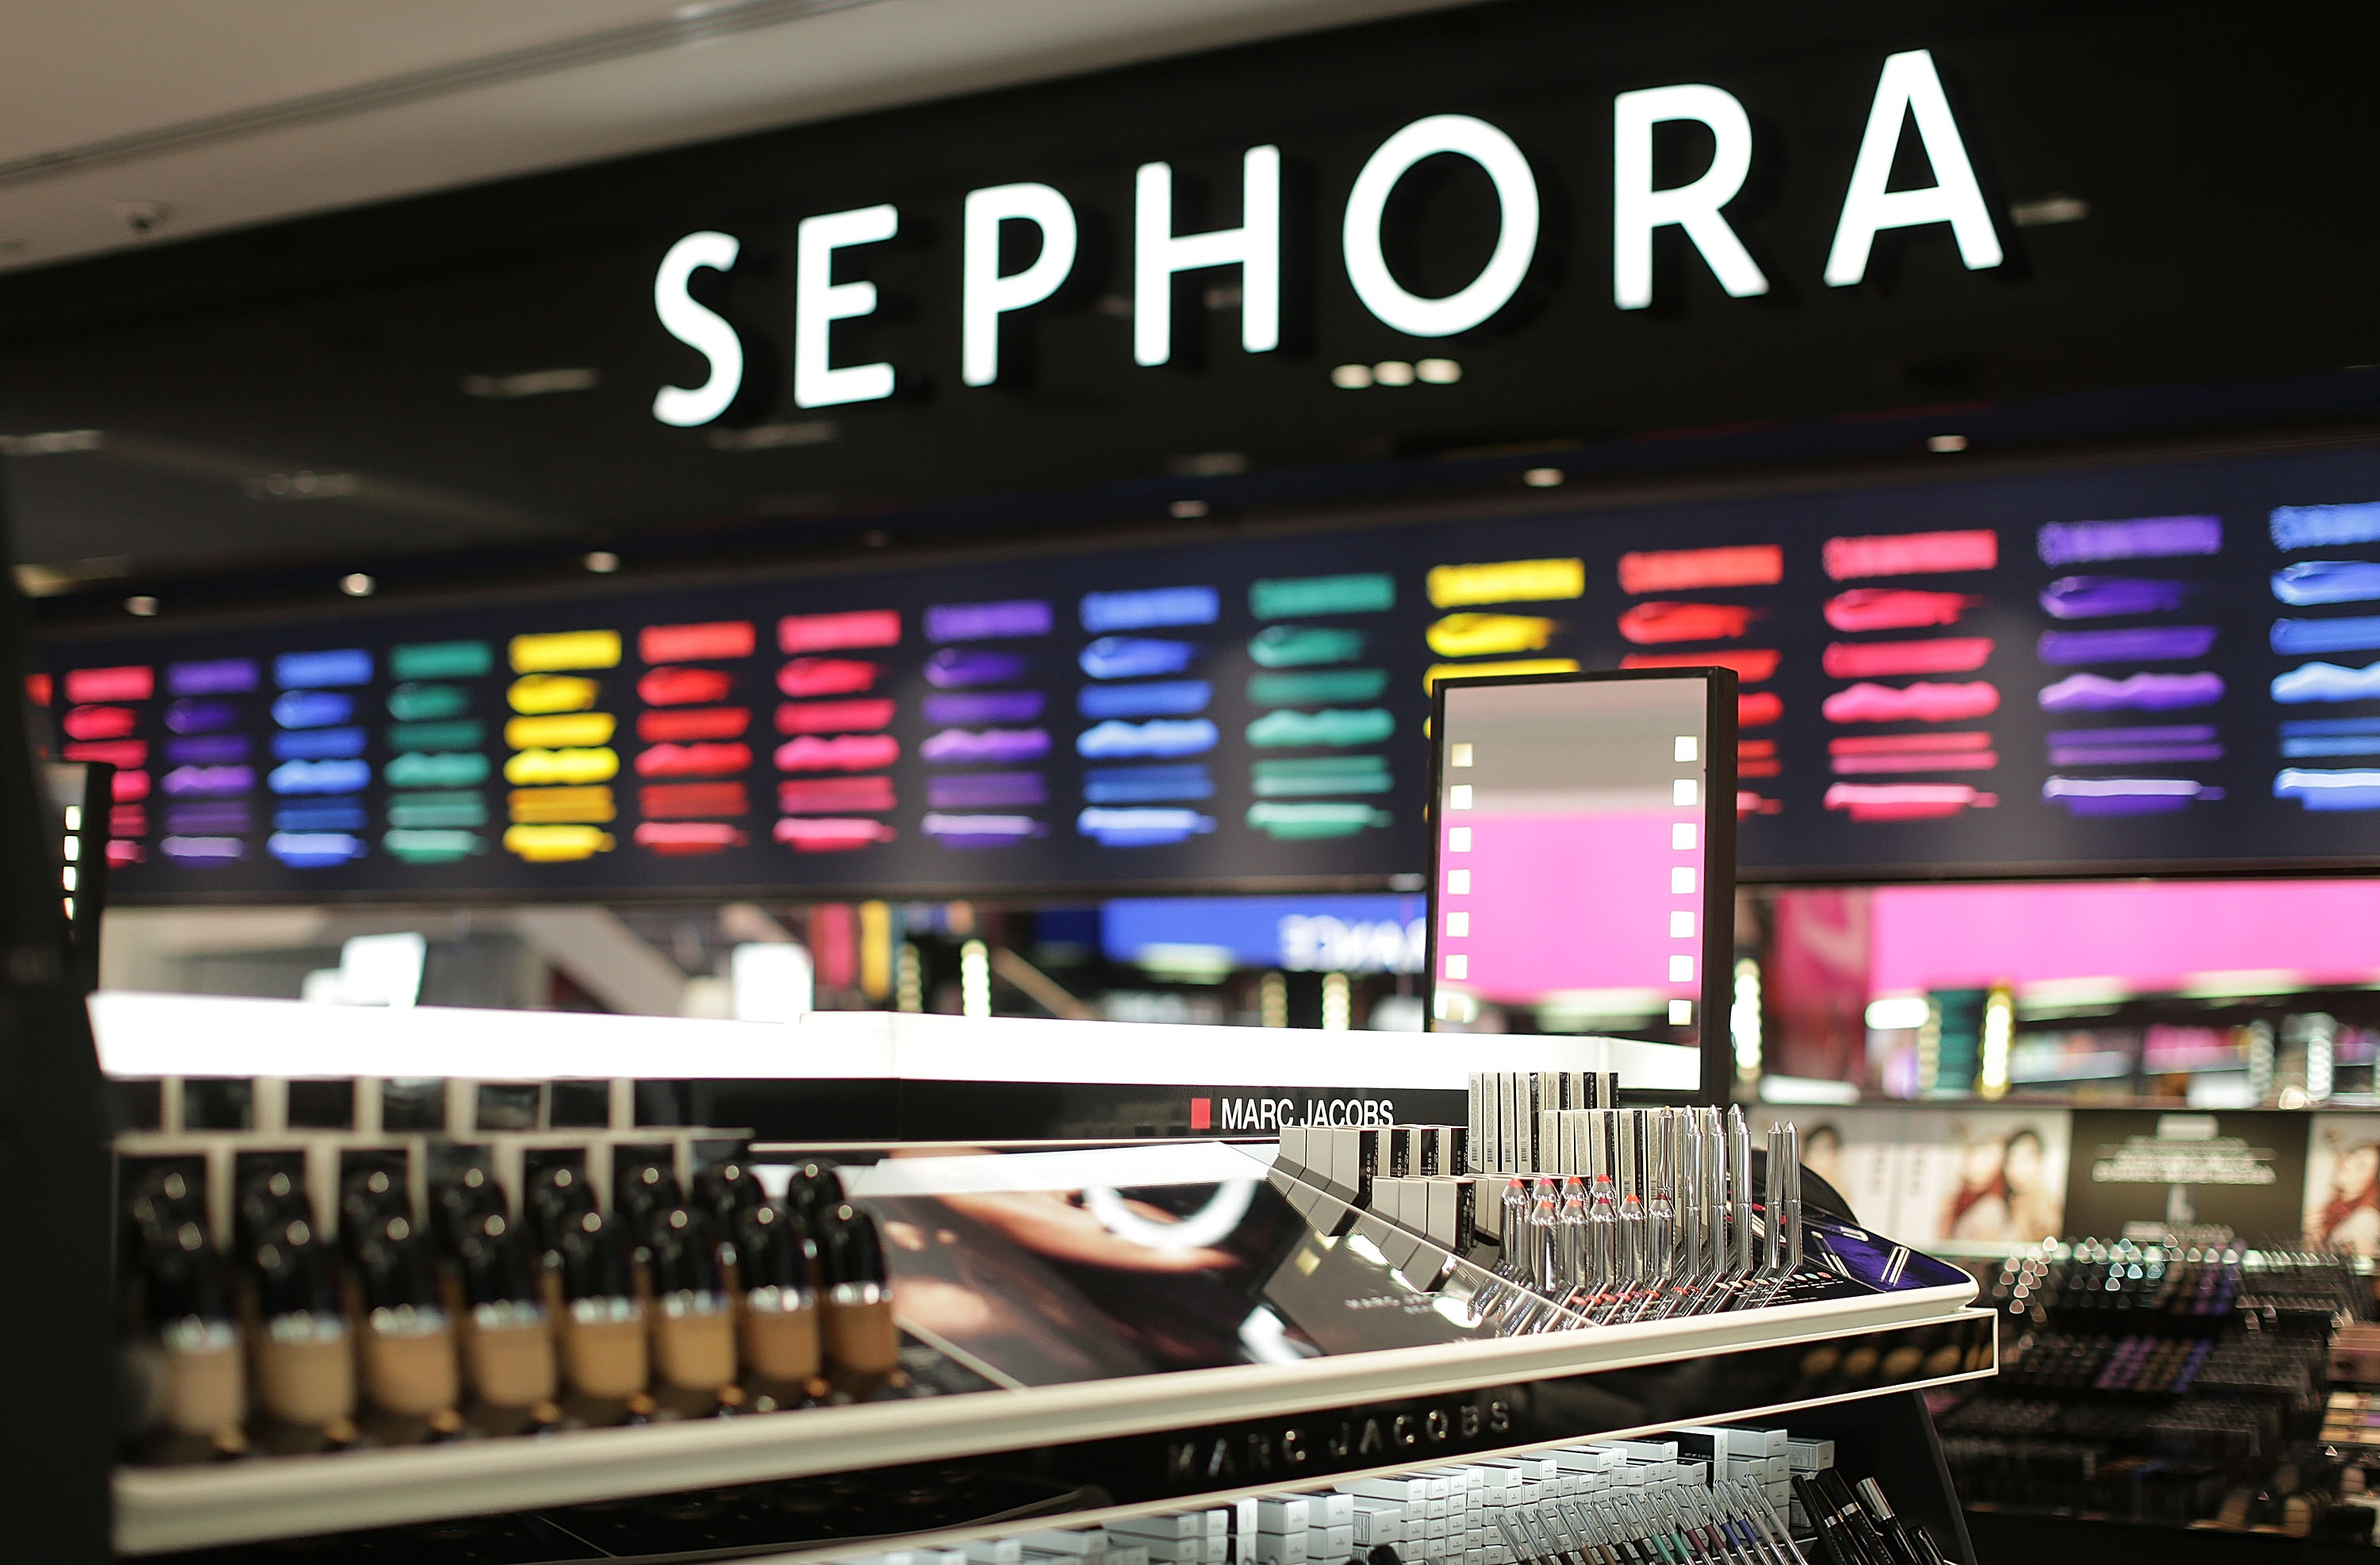 Sephora lovers opgelet: Sephora in Düsseldorf is open!